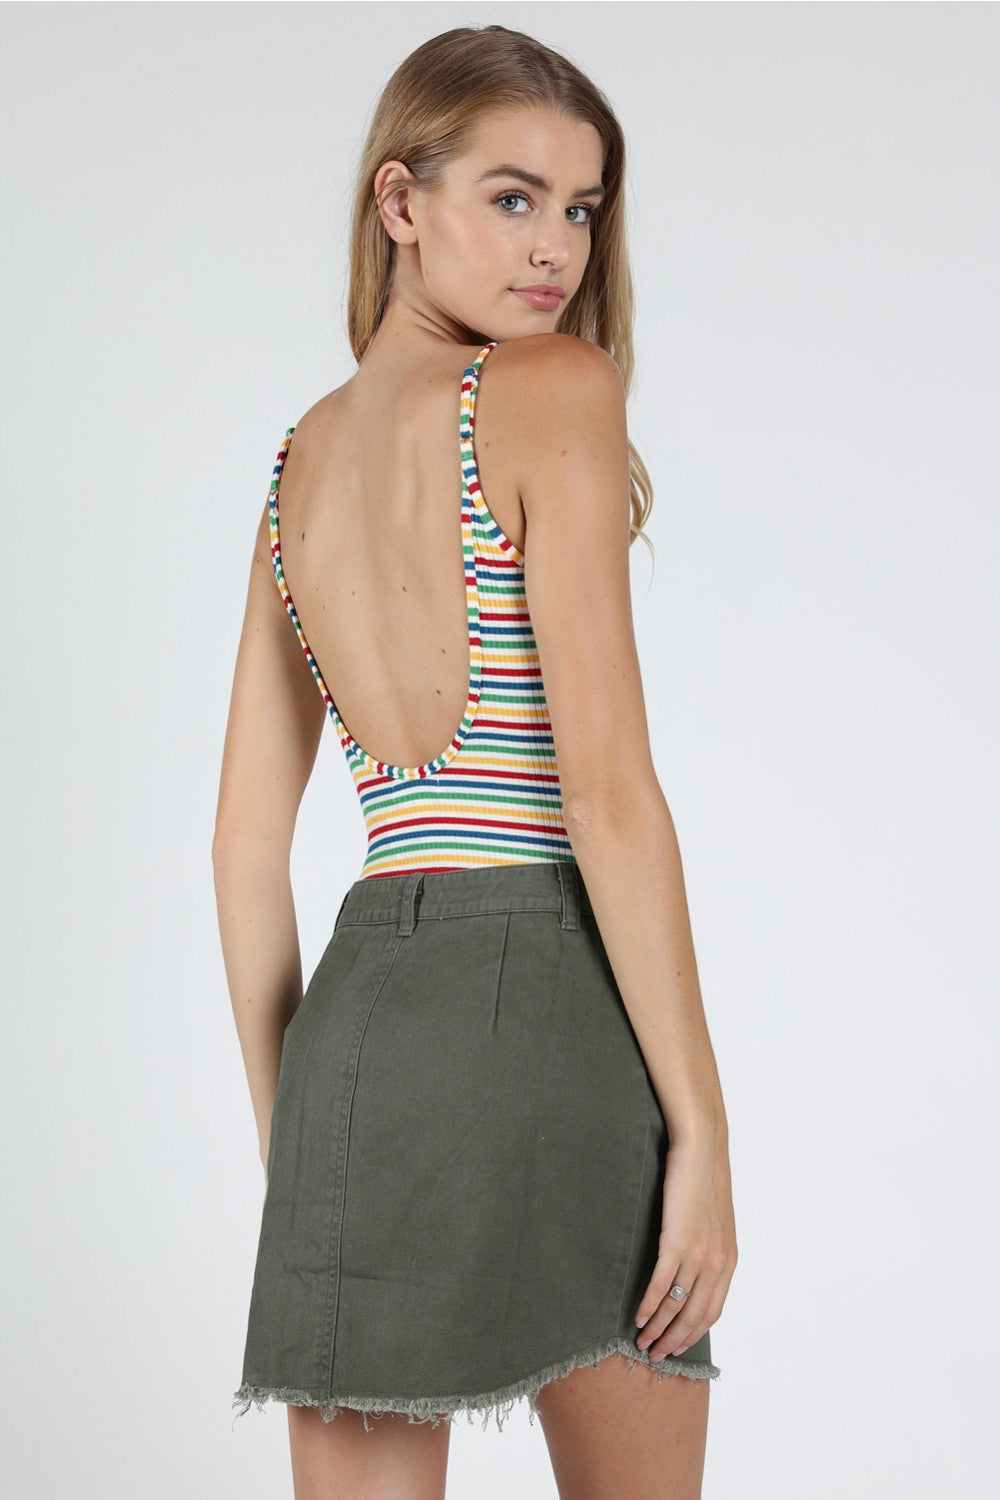 Wild Honey Rainbow Bodysuit